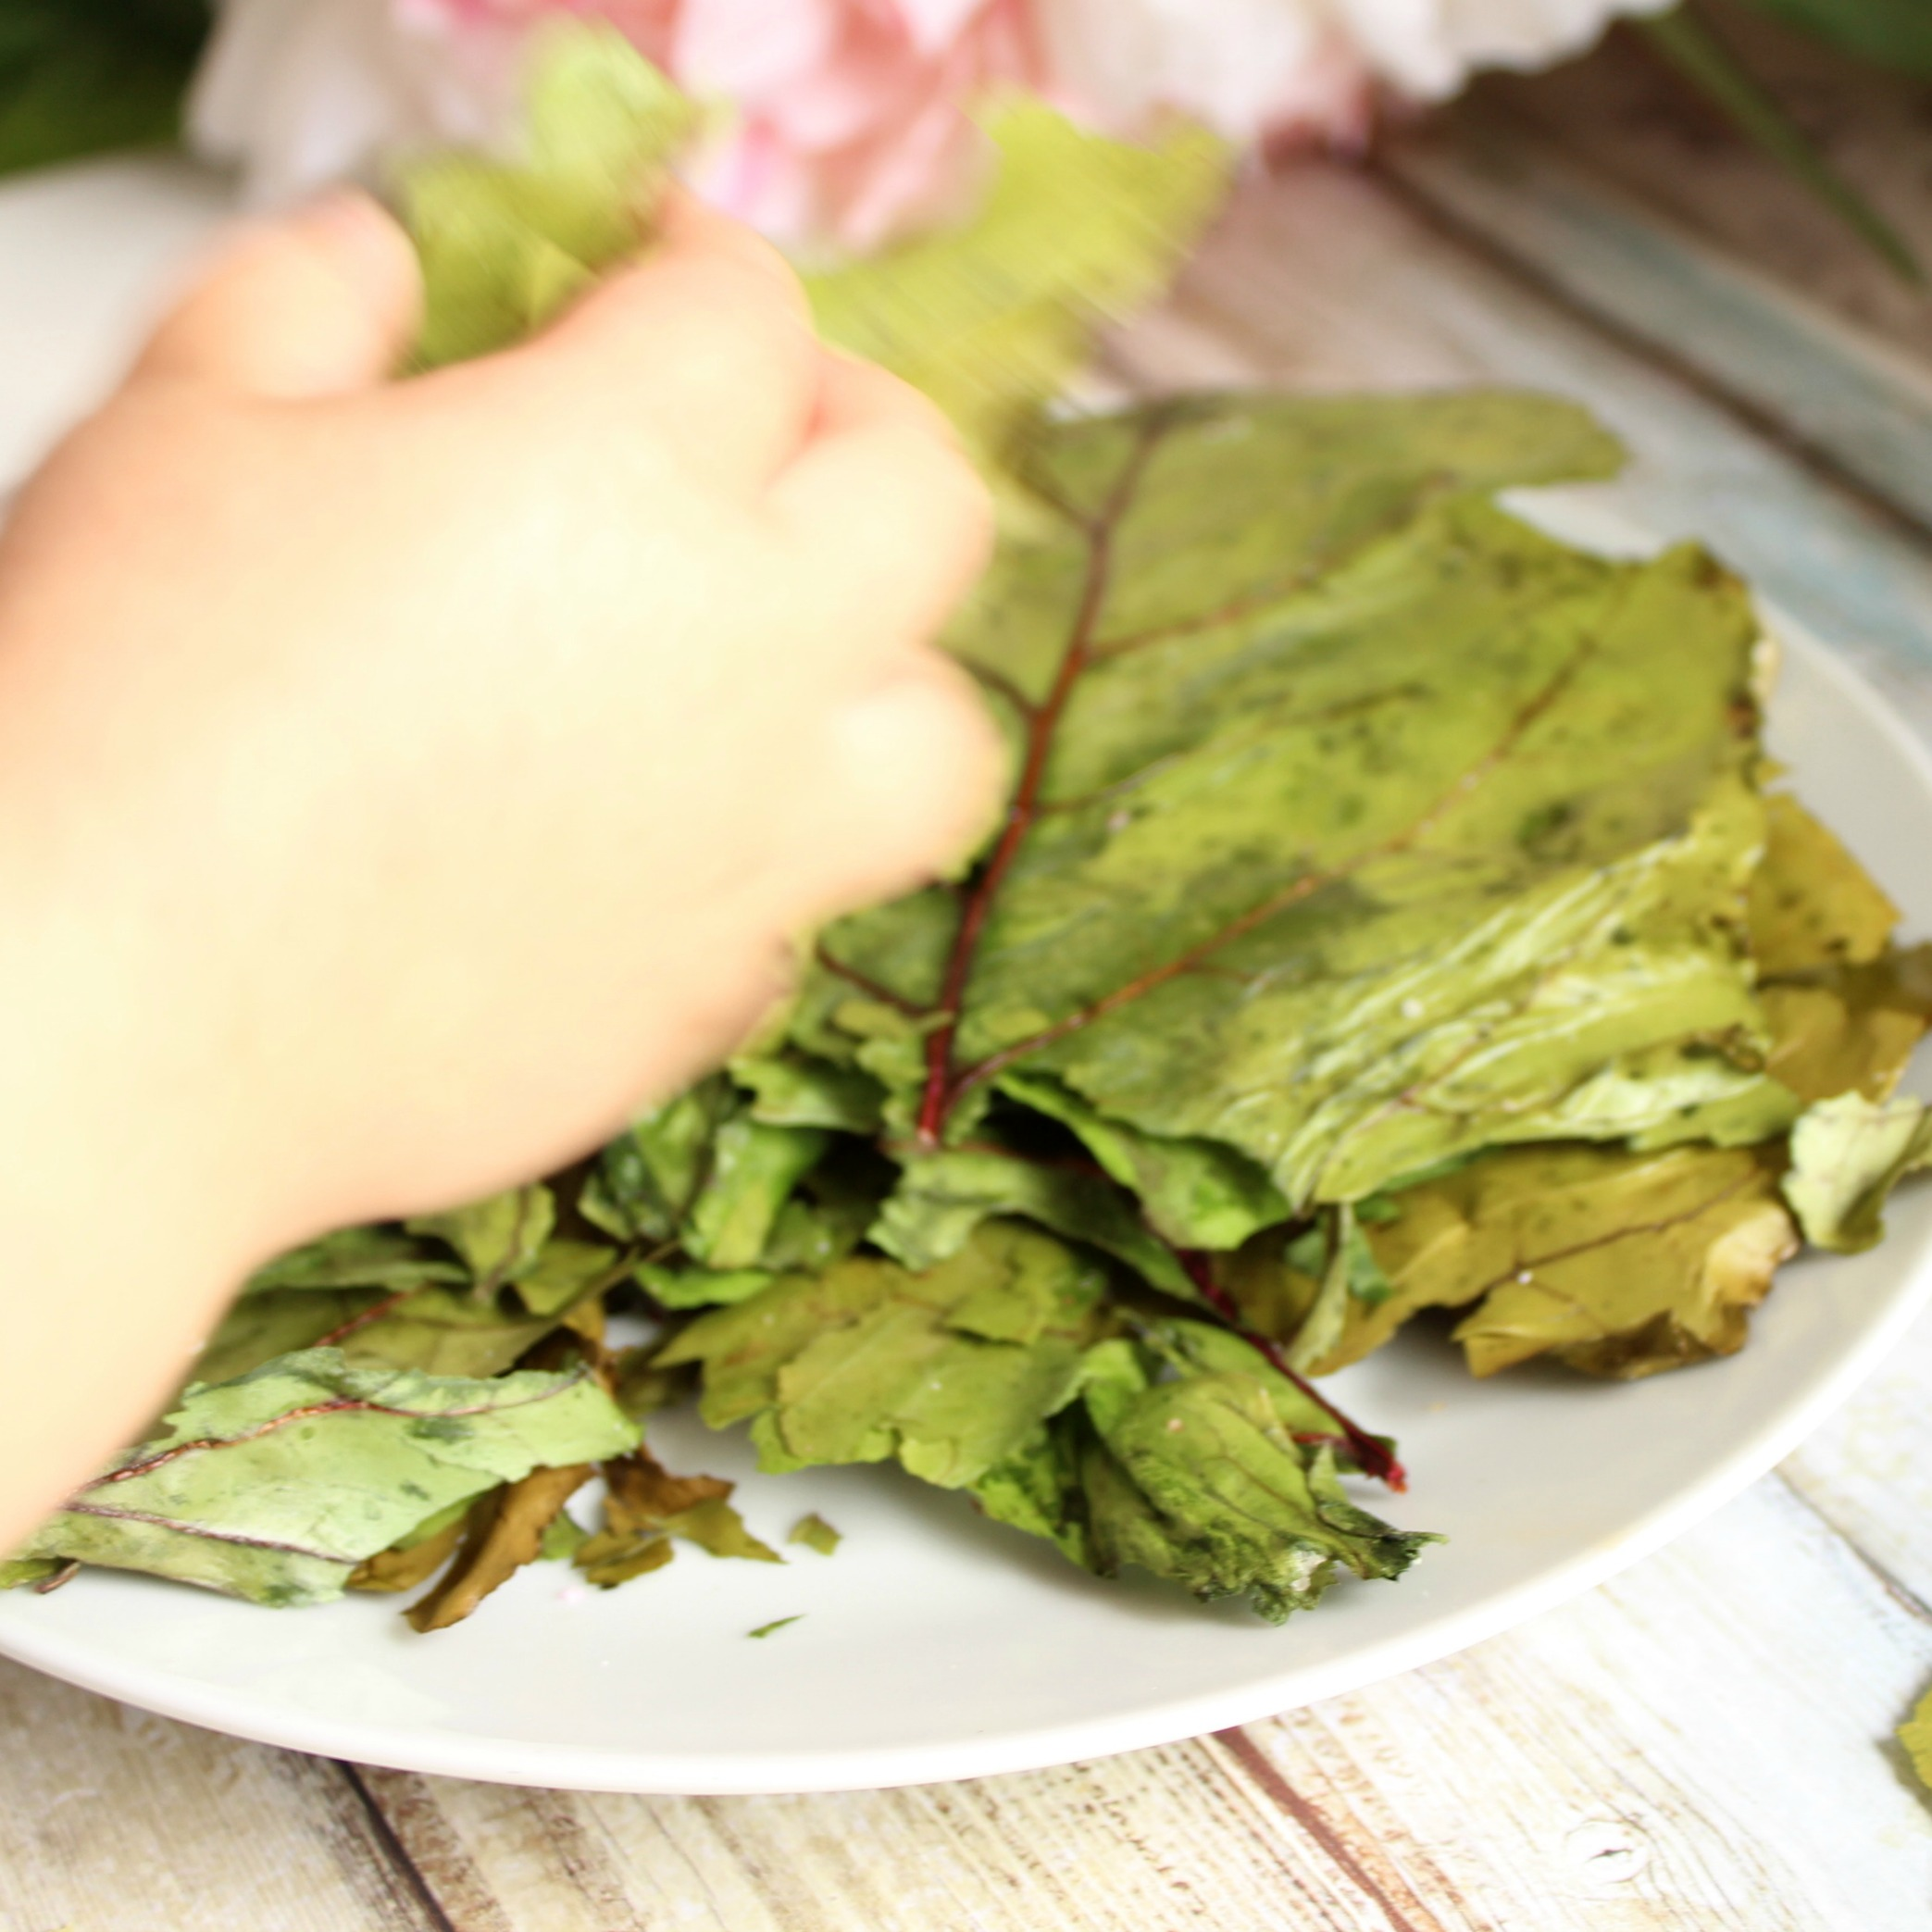 Beetroot leaf chips. Minimise food wastage by using the WHOLE beetroot to make these delicious and simple beetroot leaf chips.